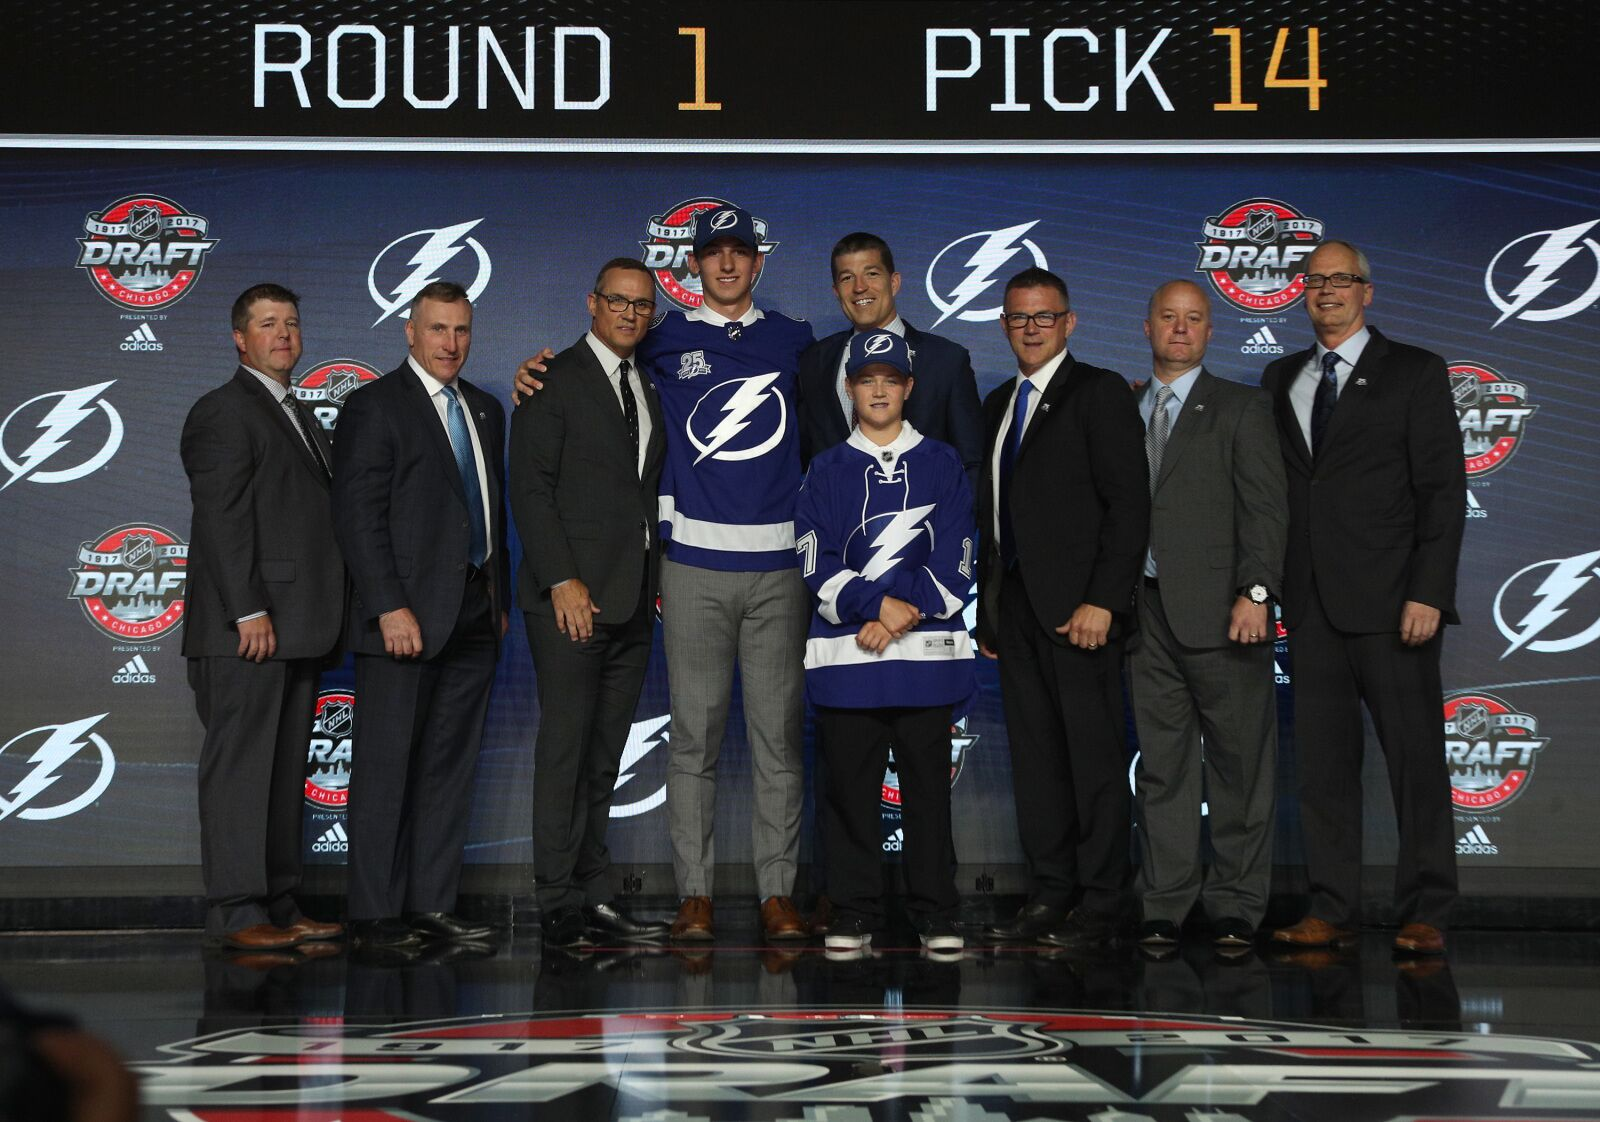 Tampa Bay Lightning: Why Steve Yzerman leaving would affect things